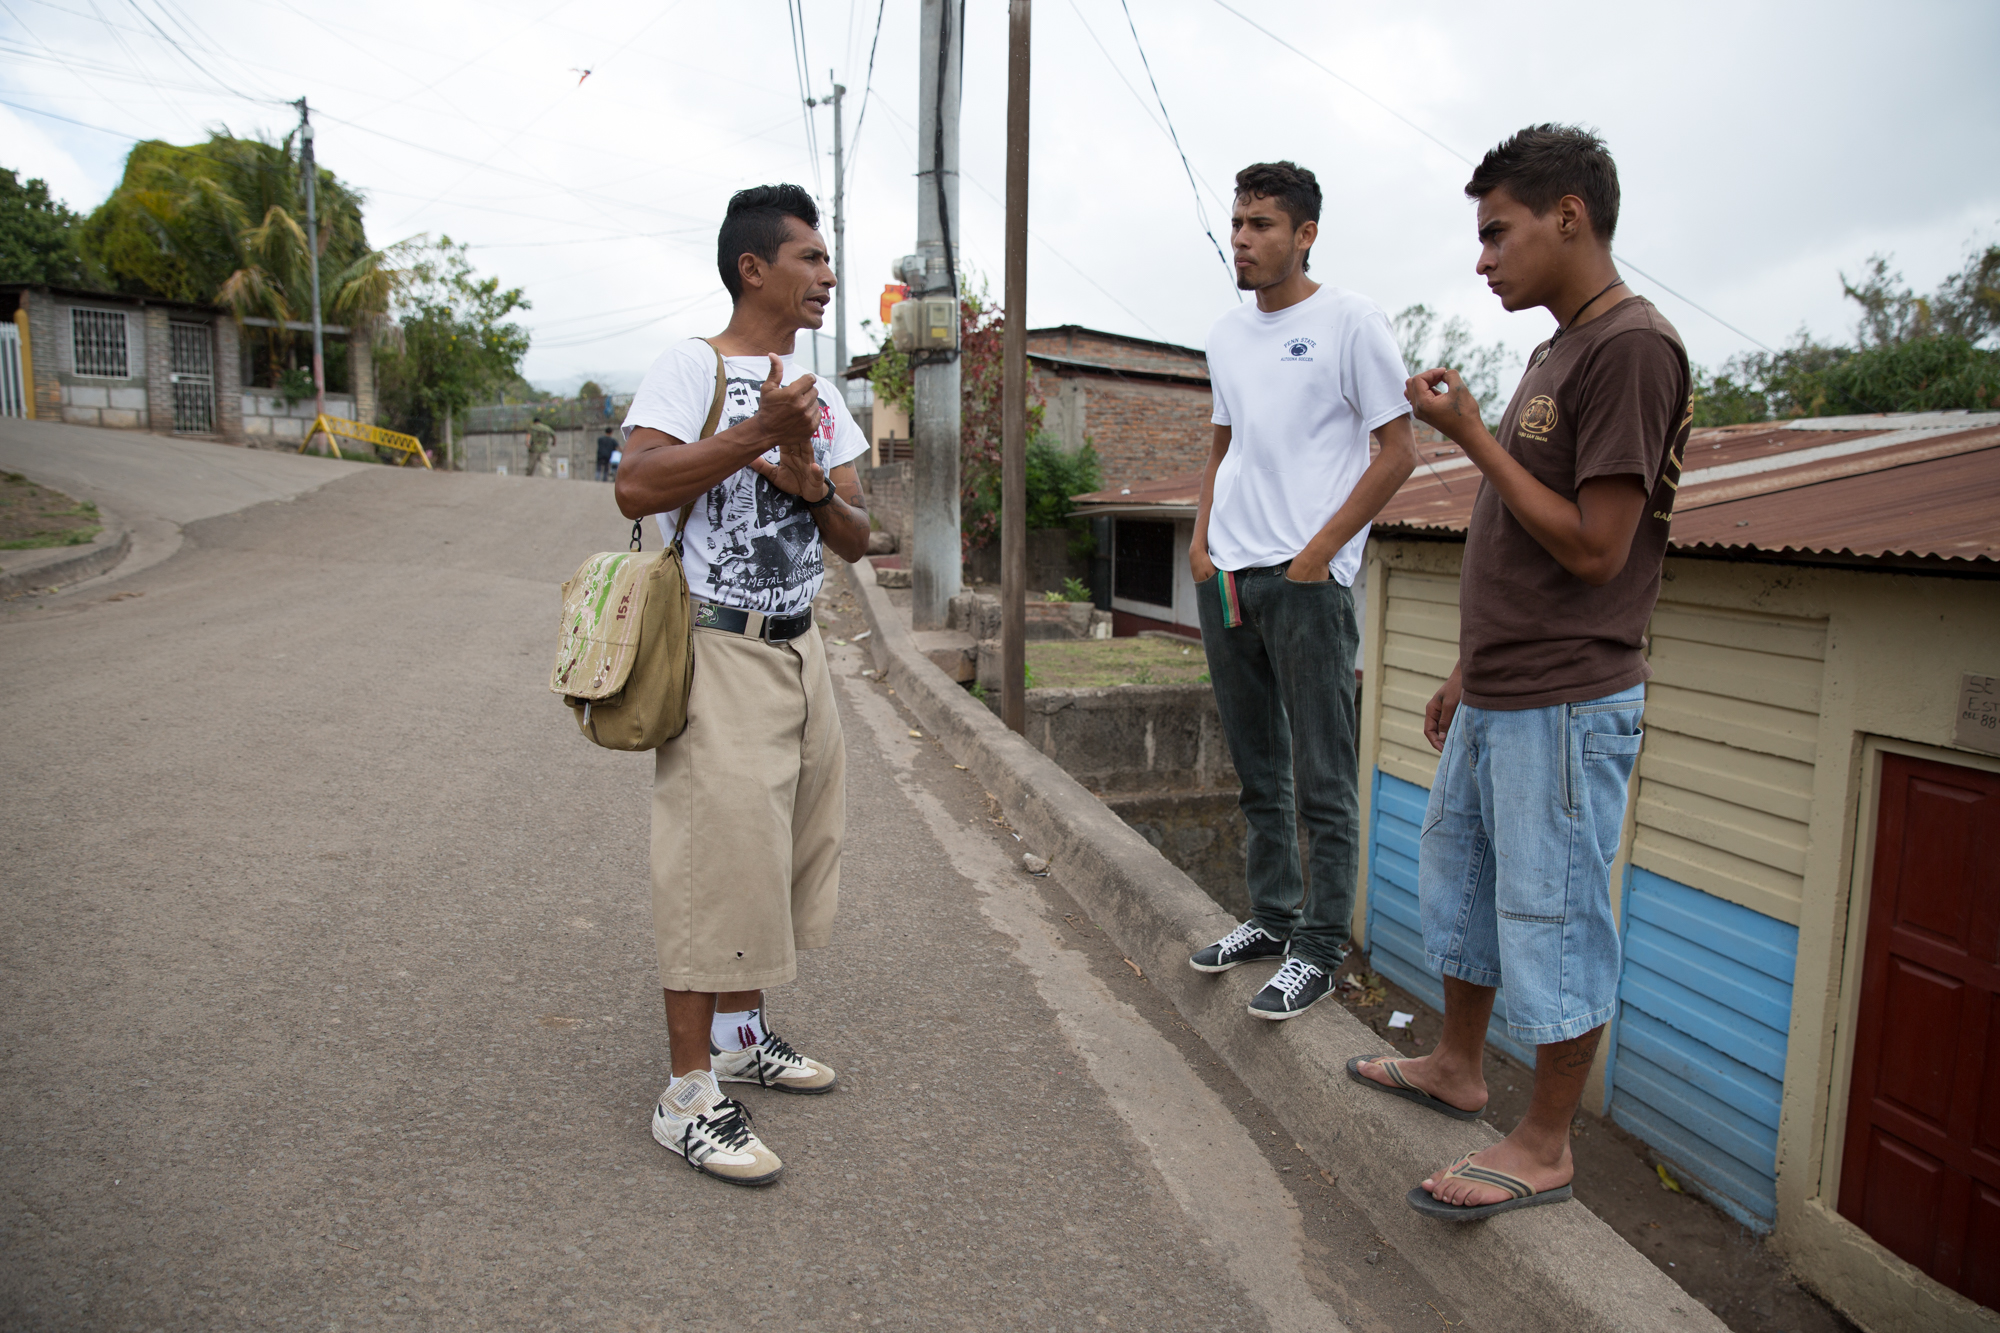 Jairo Blanchard (left) speaks with two boys in his neighborhood who are members of a gang called Mata Perros (The Dog Killers). He says this gang is one of the ones he has a lot of problems with because some of the members are involved with alcohol and drugs.